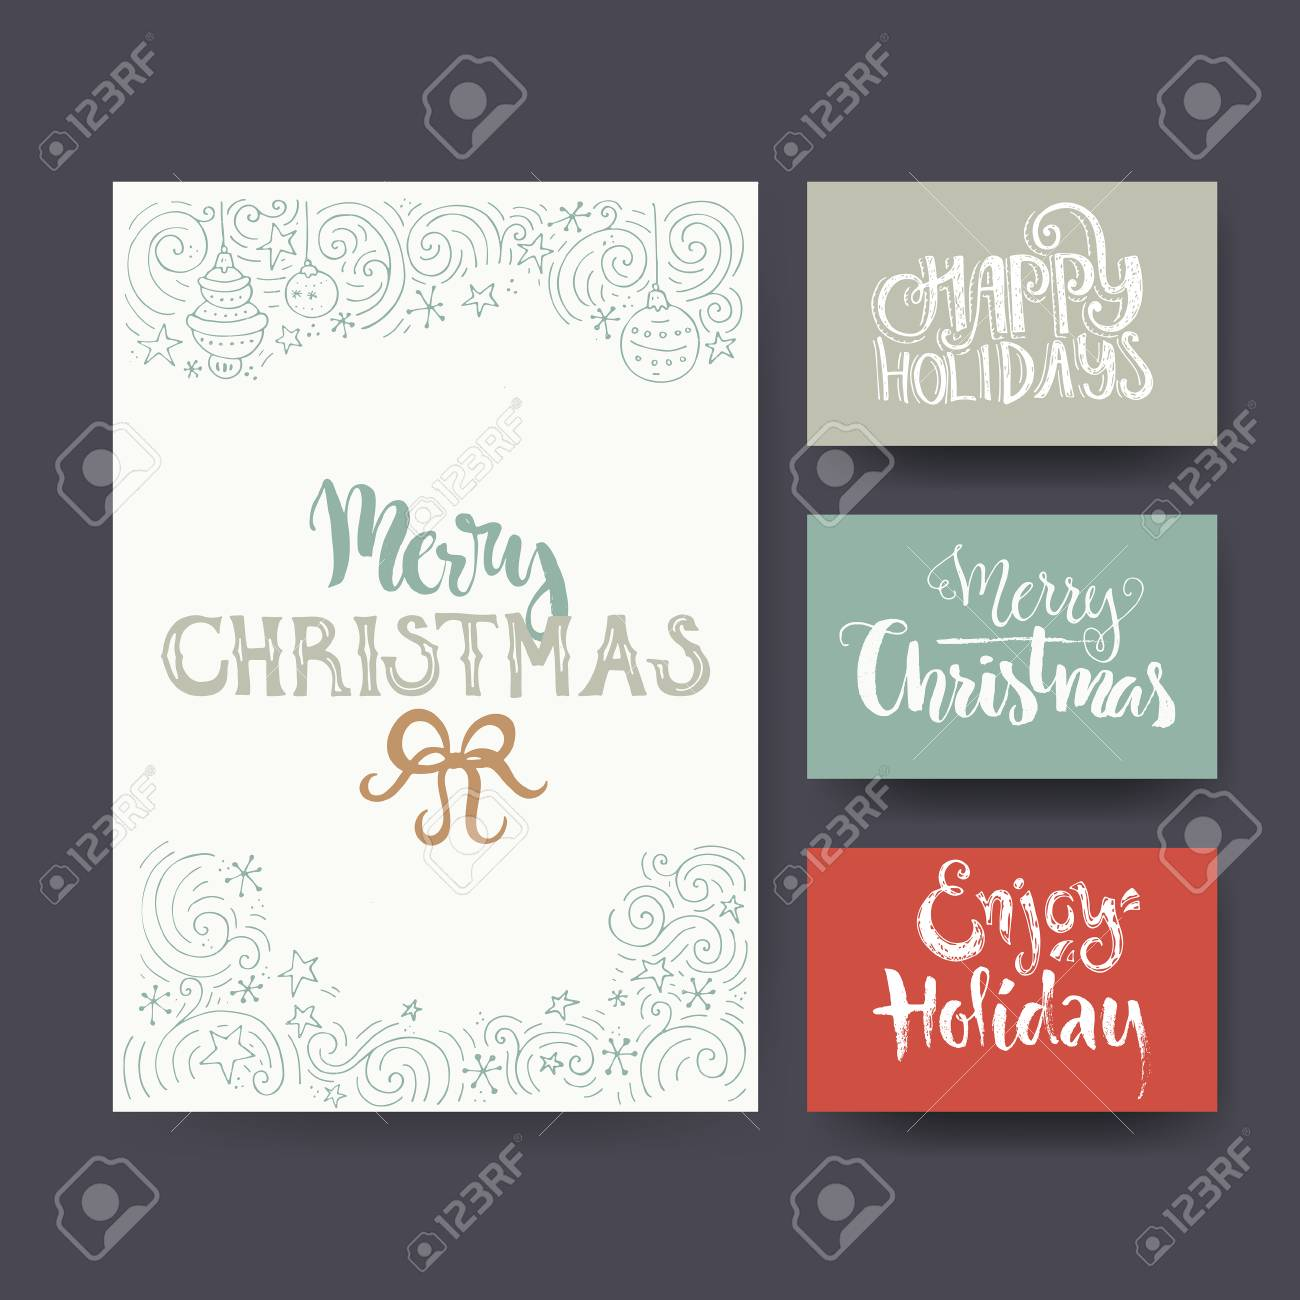 Set Of Greeting Card Templates With Unique Christmas Design Elements